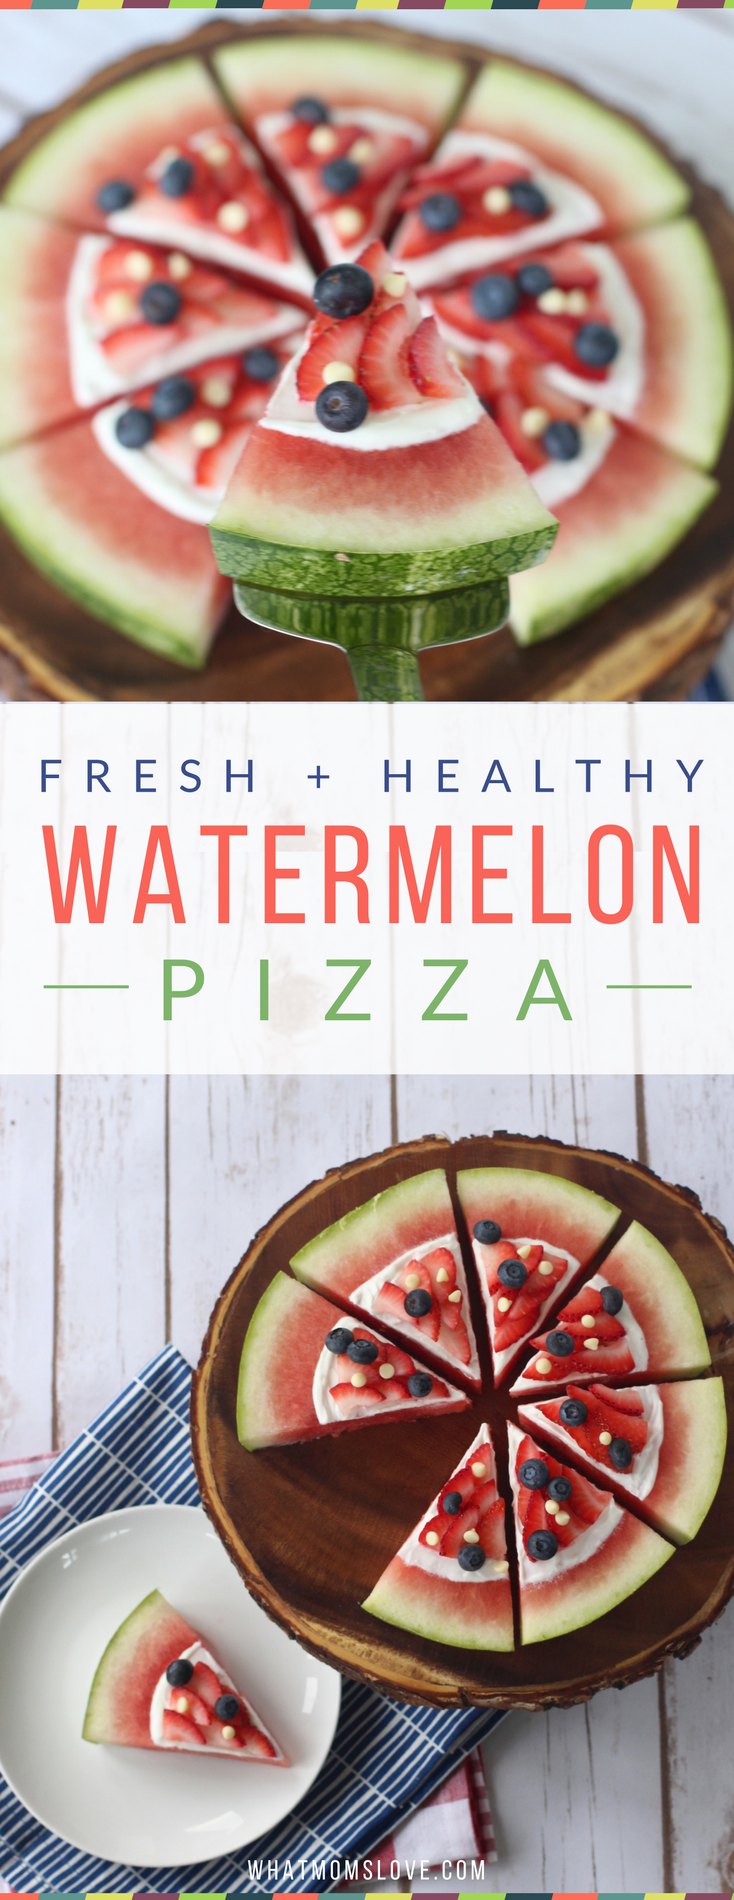 Watermelon Pizza. A Red, White and Blue Crowd-Pleaser For Your 4th Of July Celebration Watermelon Fruit Pizza - an easy and healthy snack that's a big hit at parties and a fun treat for kids! Visit  for the full recipe.Watermelon Fruit Pizza - an easy and healthy snack that's a big hit at parties and a fun treat for kids! Visit  for the ful...